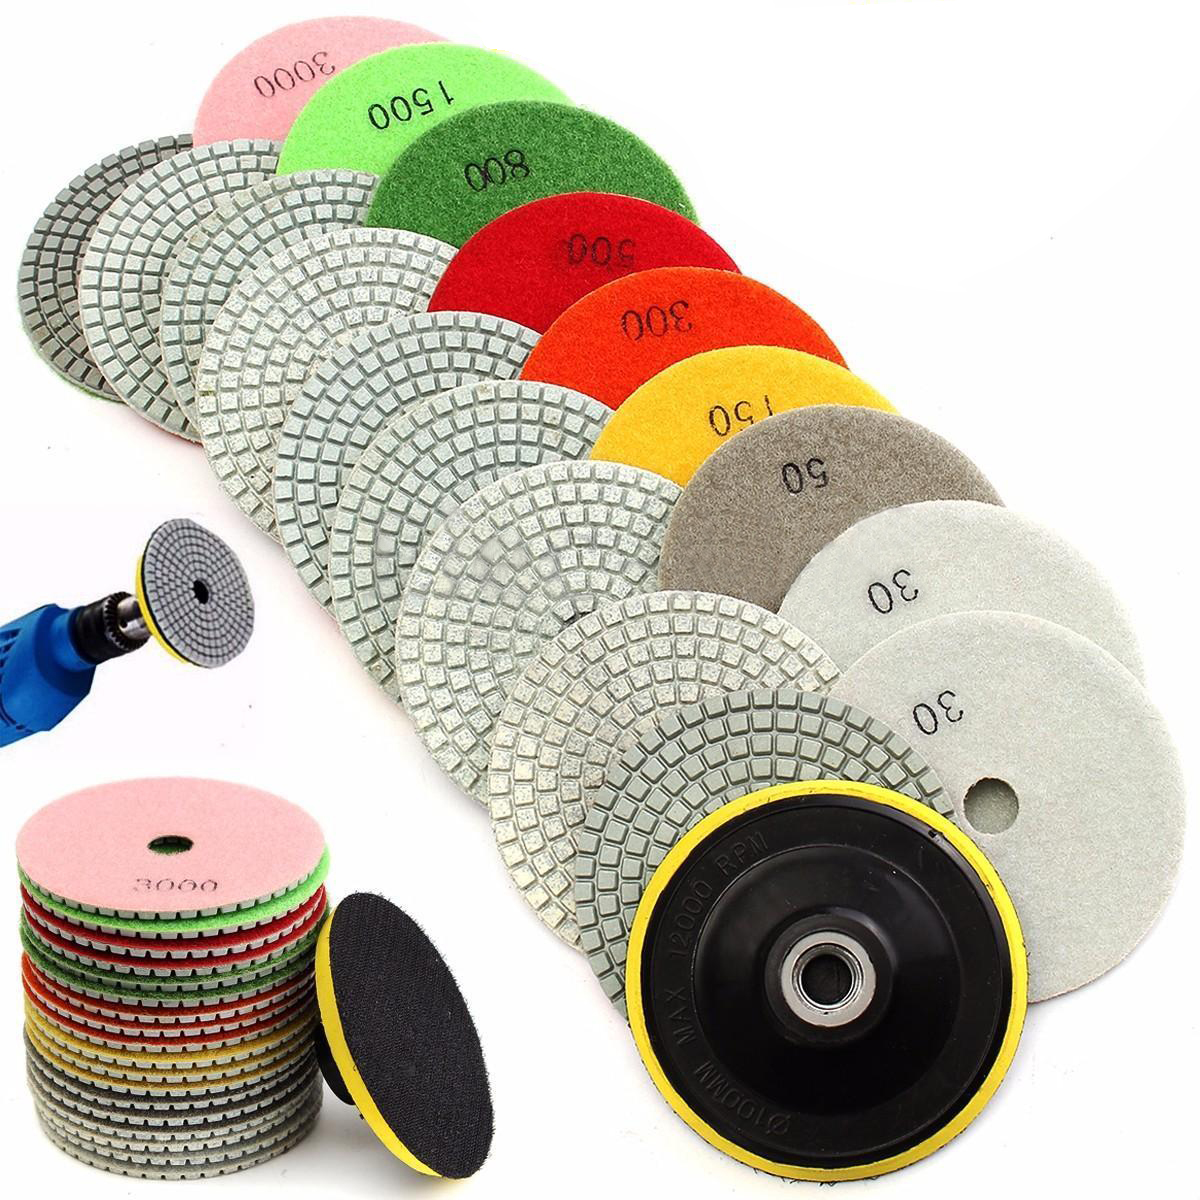 19pcs 4inch Wet/Dry Diamond Polishing Pads For Granite Marble Concrete Stone Polishing Tools motivi motivi mo042ewjim33